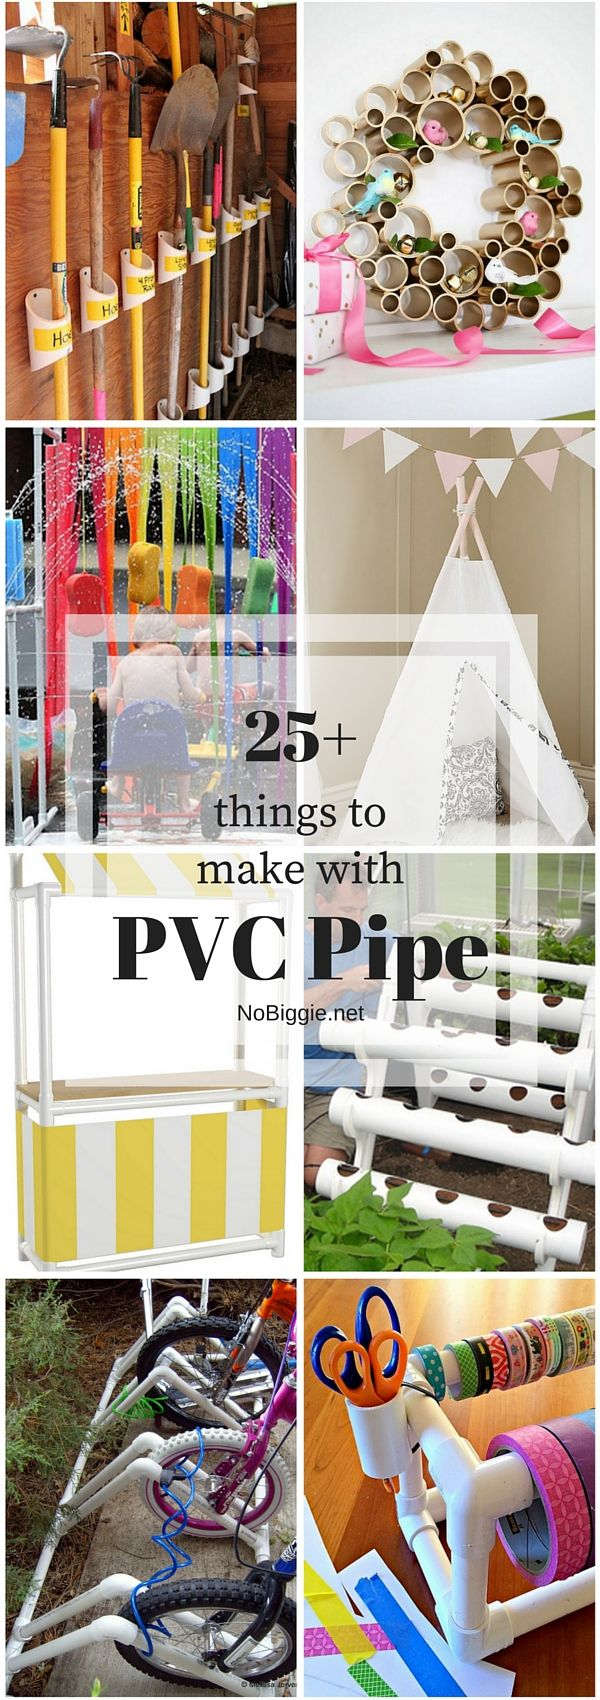 571 best PVC Pipe Crafts images on Pinterest | Storage ...